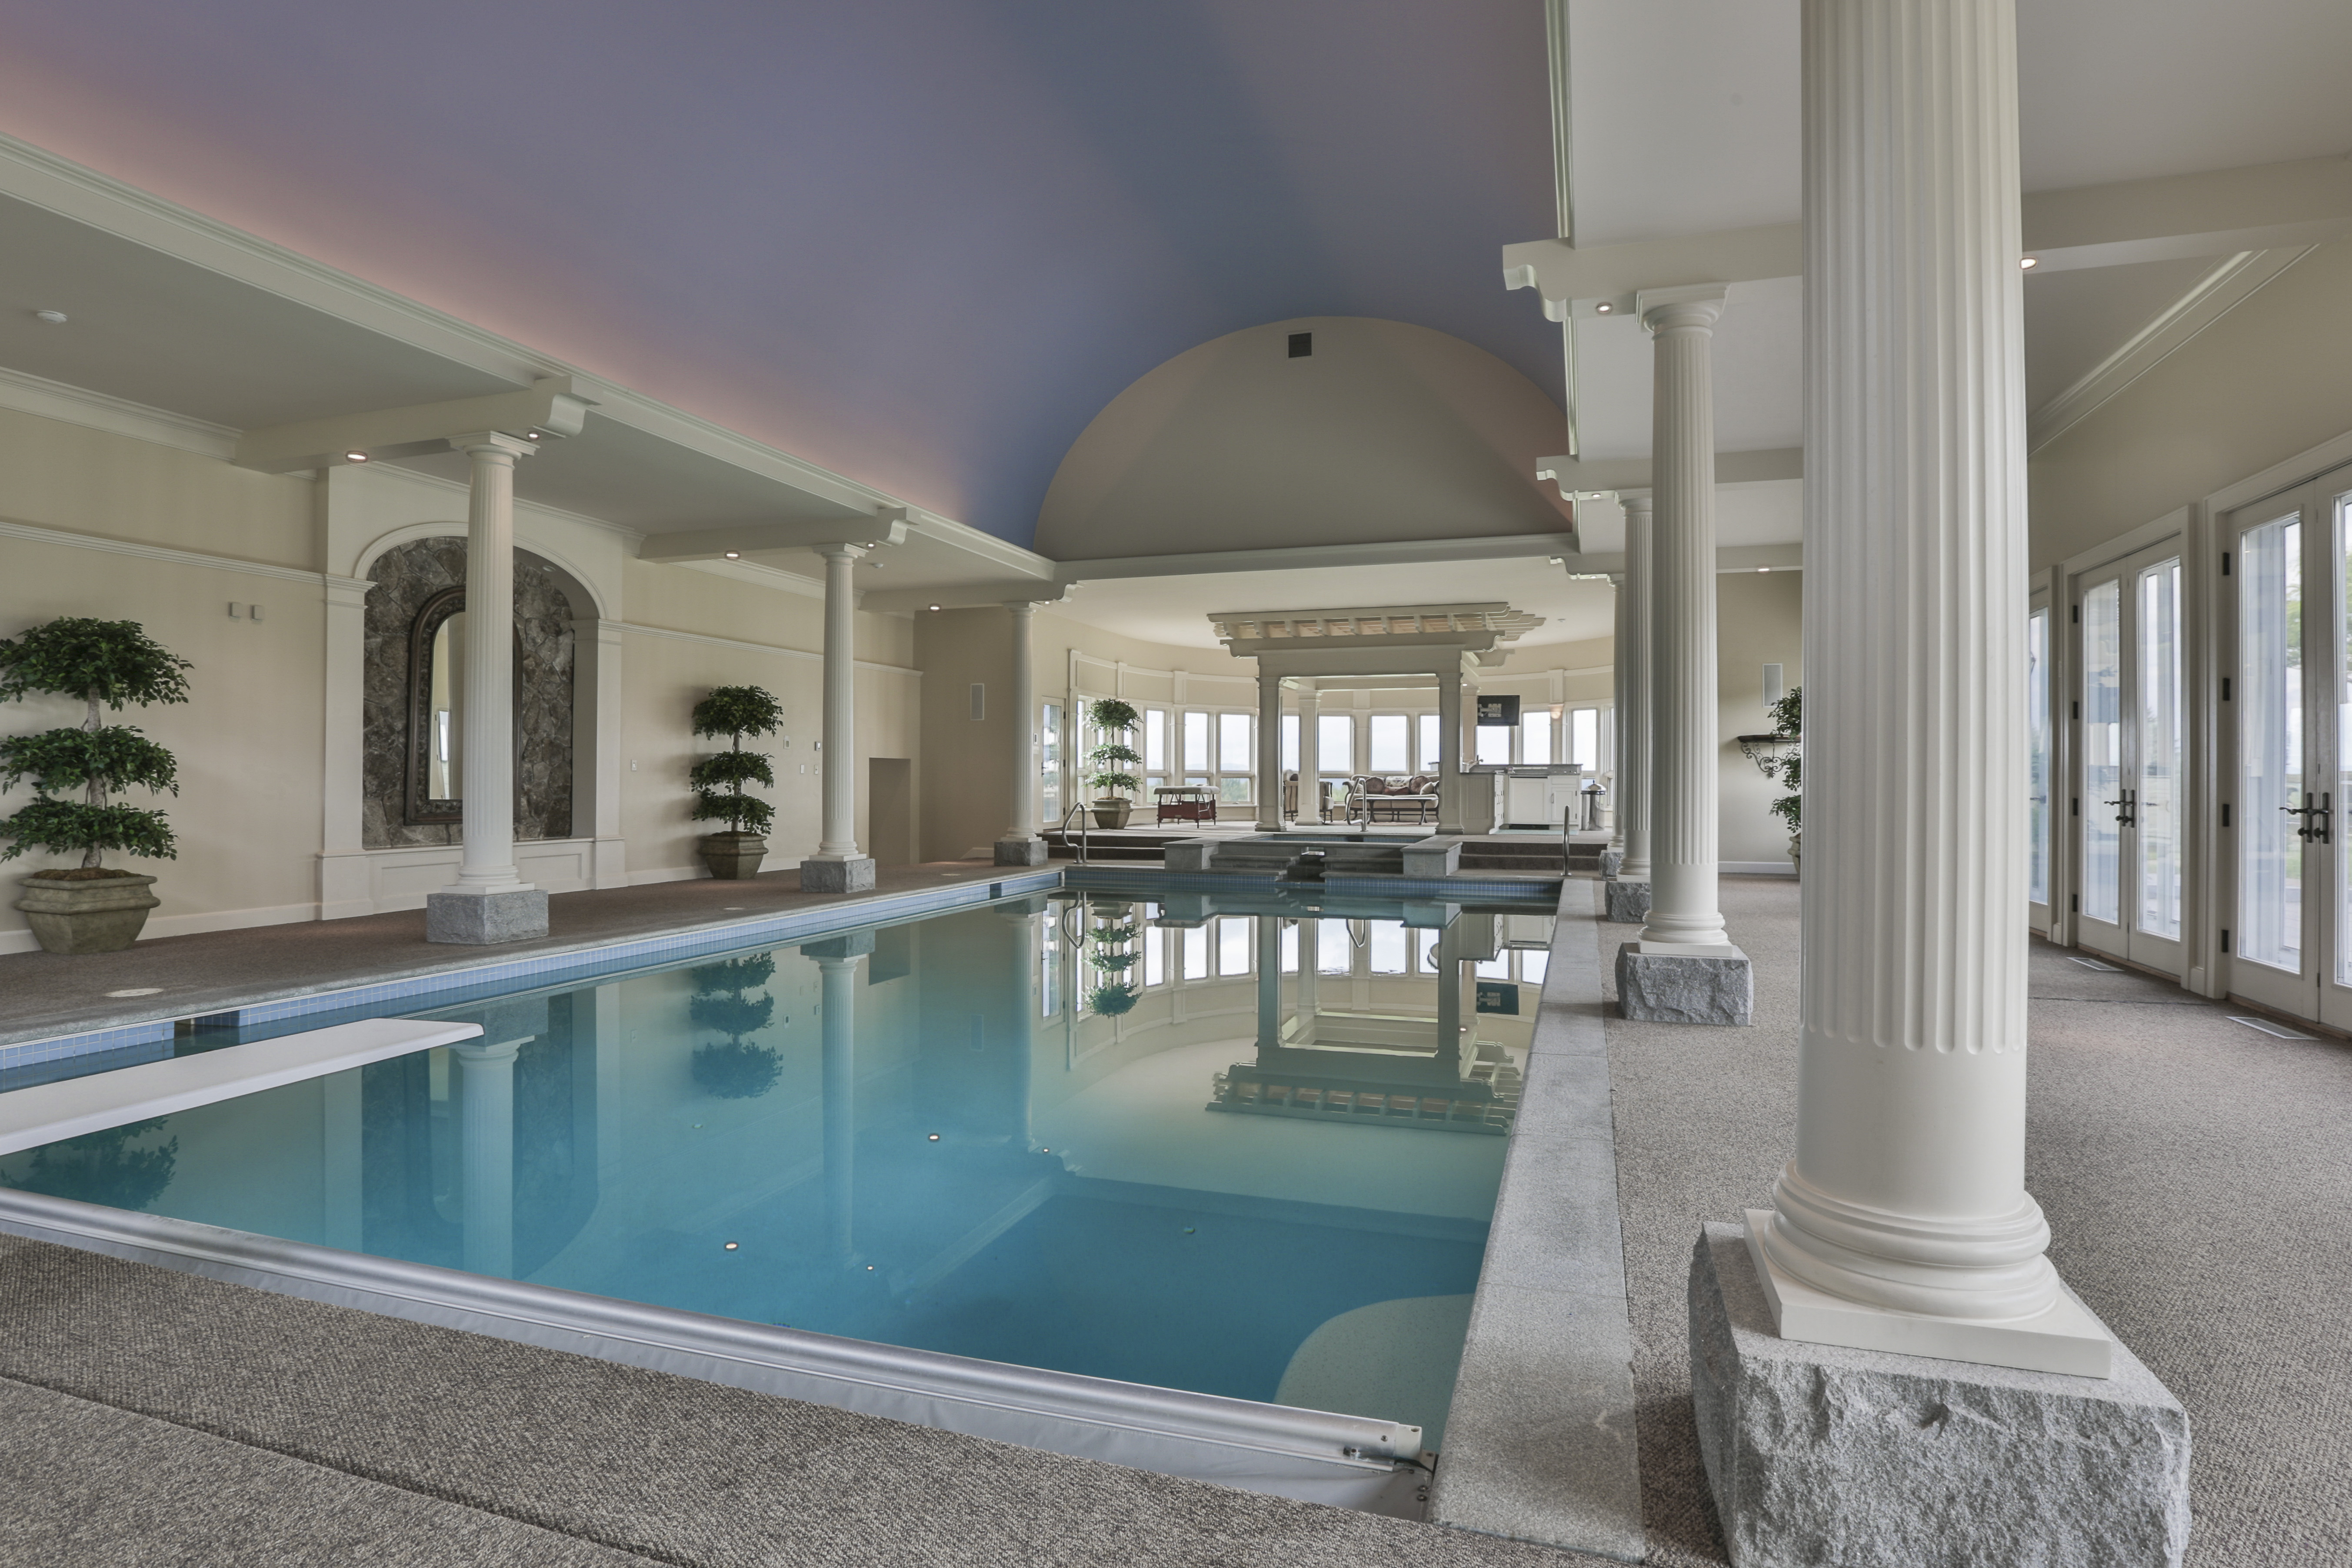 Judd Residence NH, custom home, residential home, architect, architectural services nh, bruce hamilton, brha, architect nh